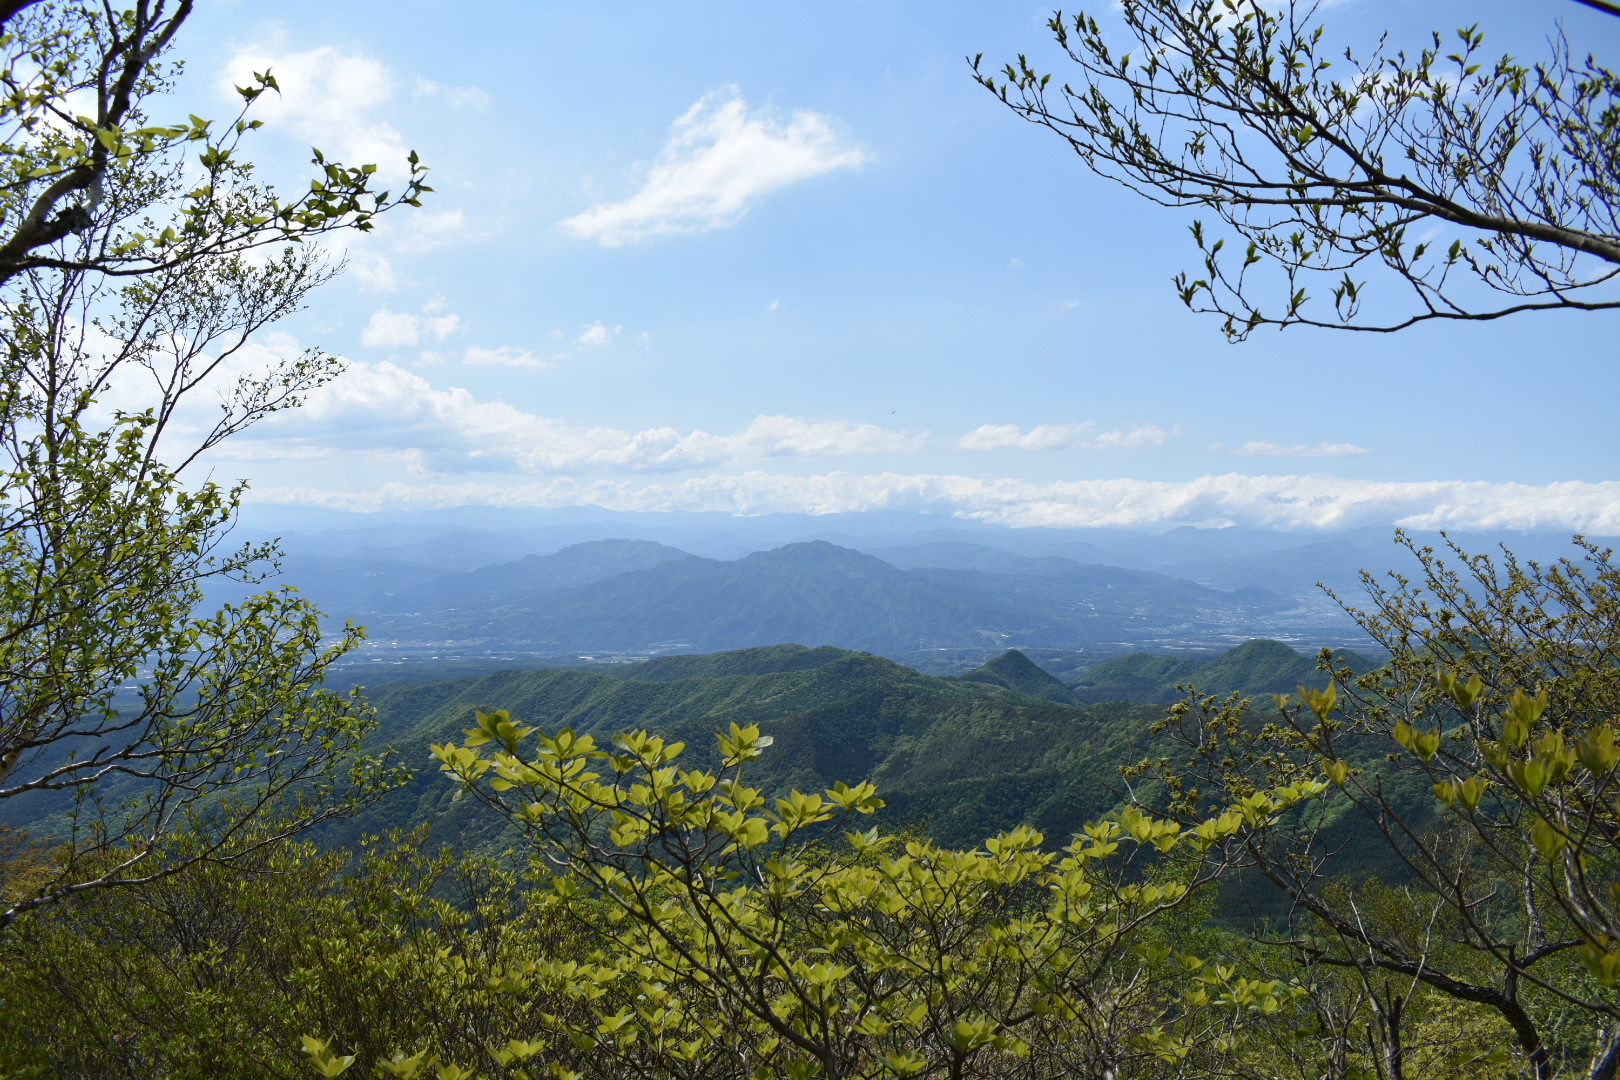 A view from Arayama Peak of blue mountains stretching out in the distance